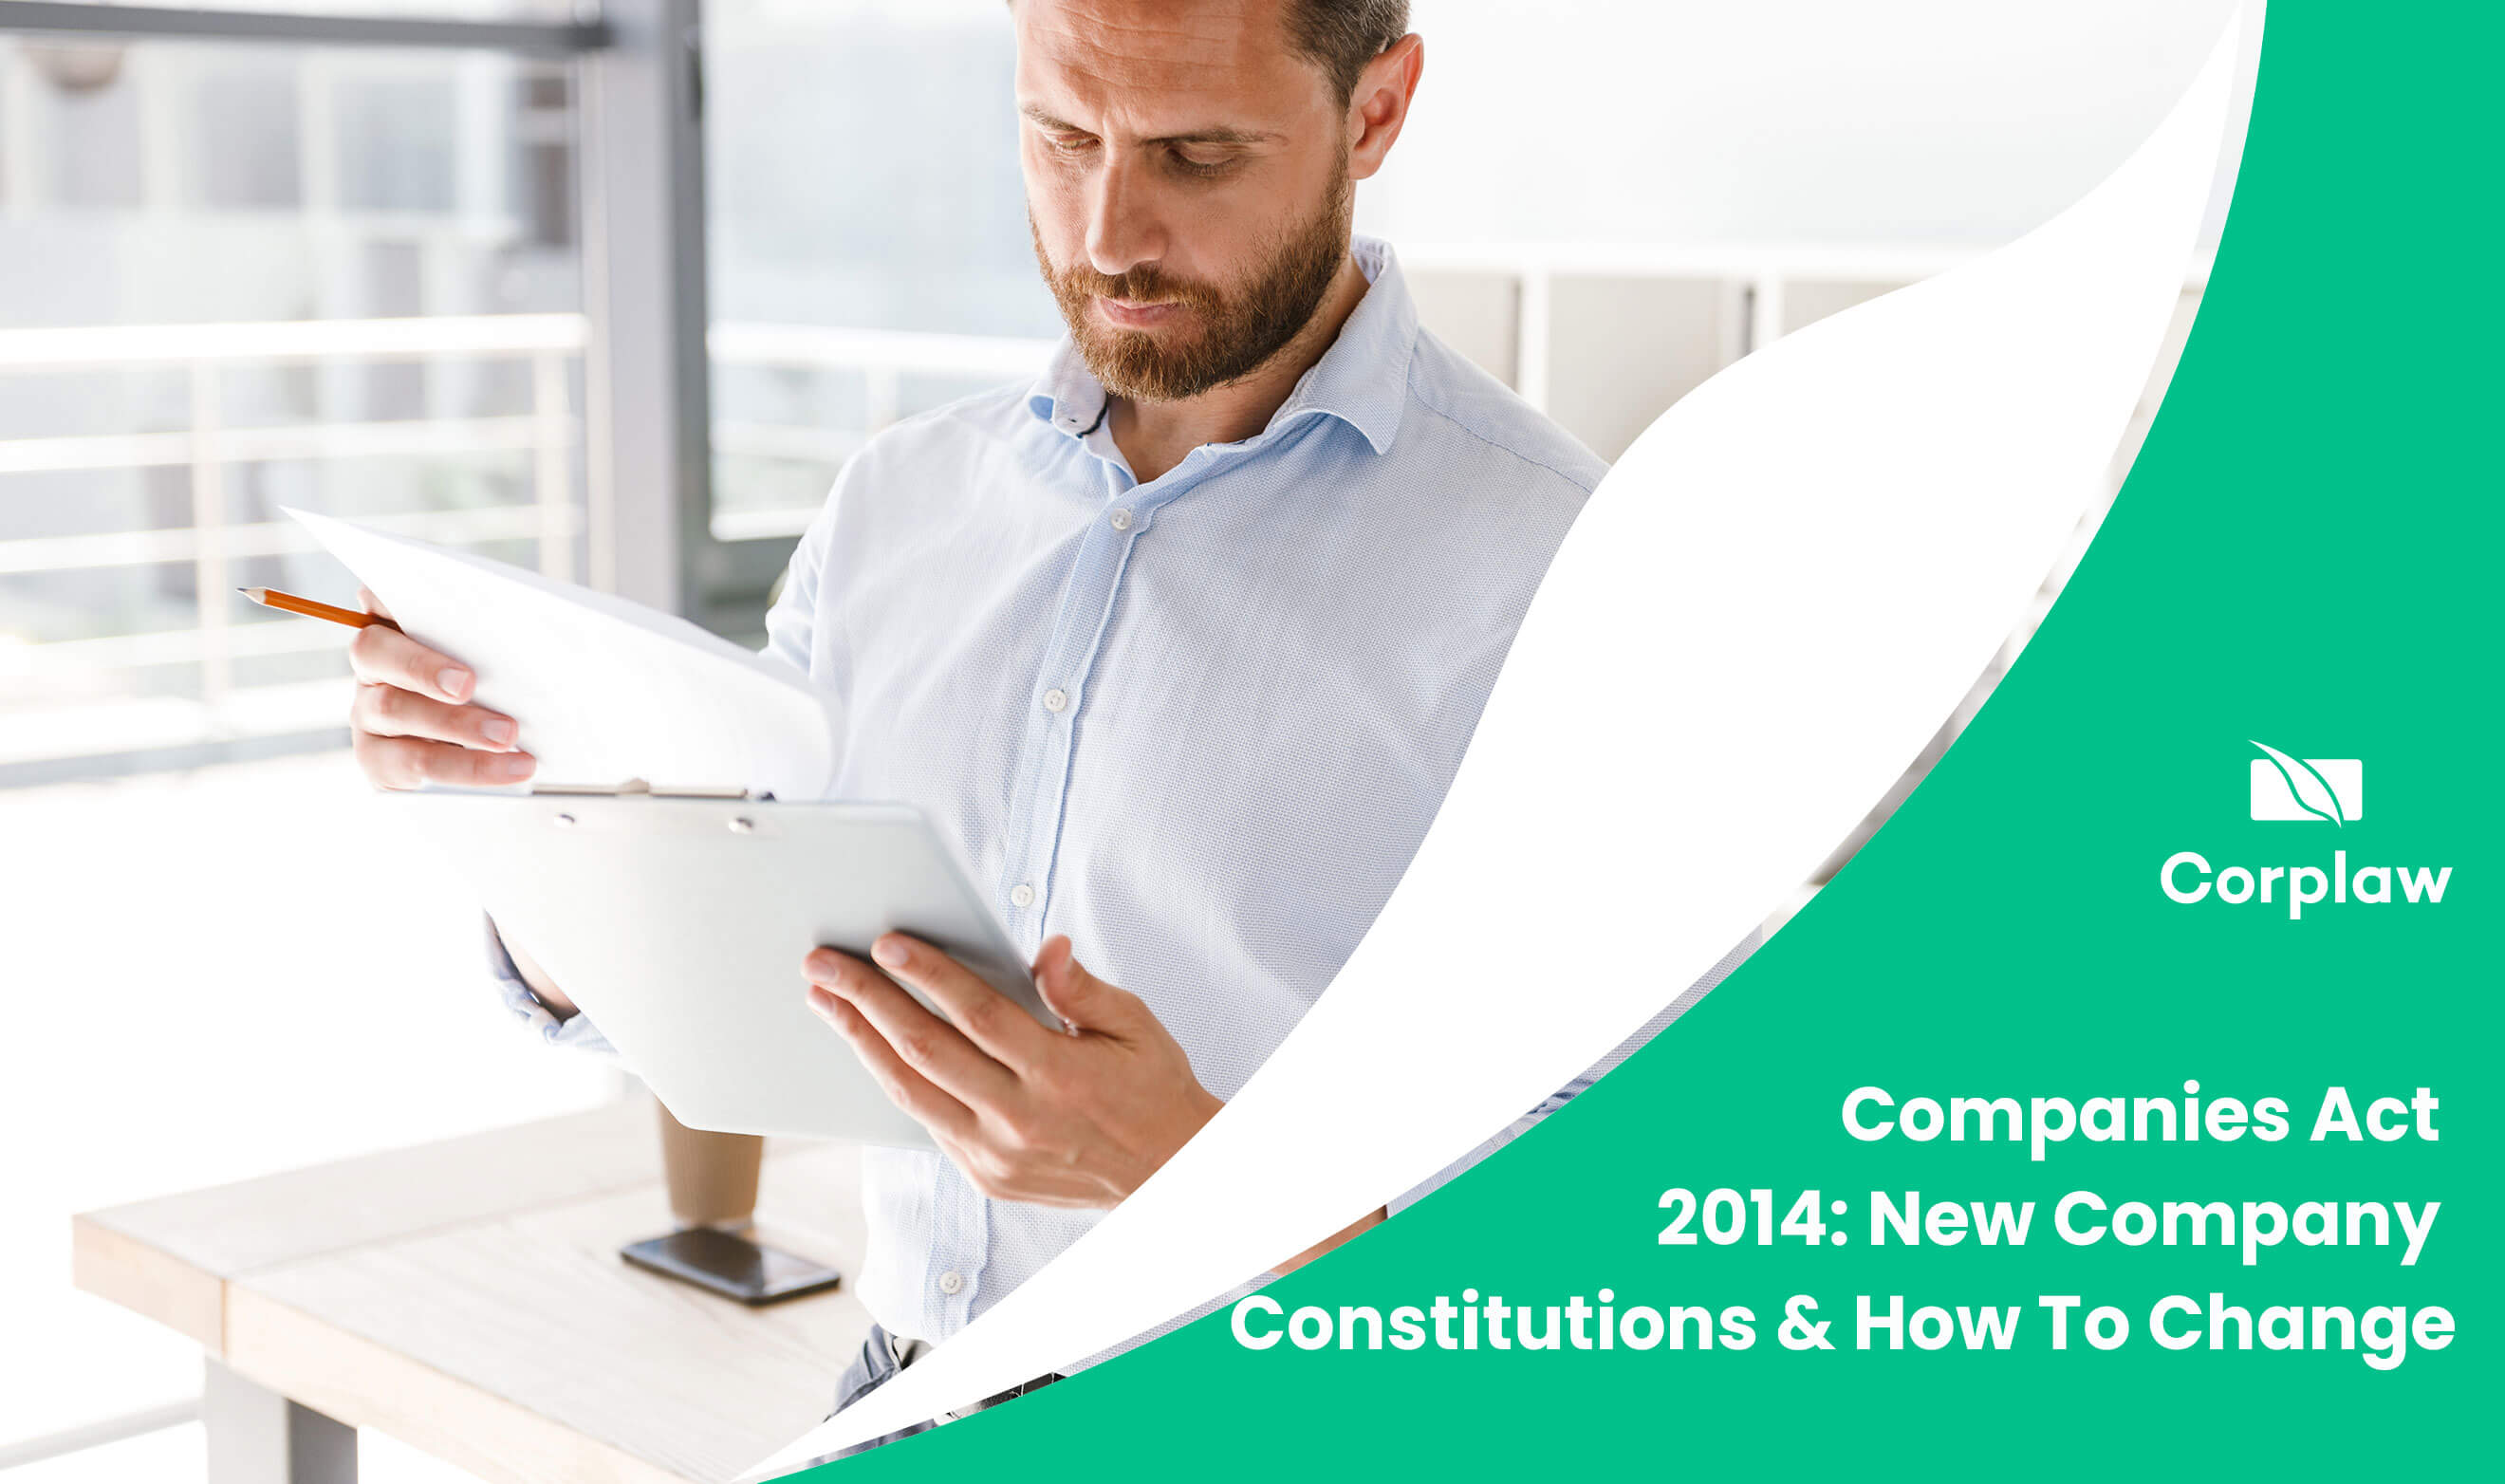 Corplaw-Blog-Companies-Act-2014--New-Company-Constitutions-&-How-To-Change